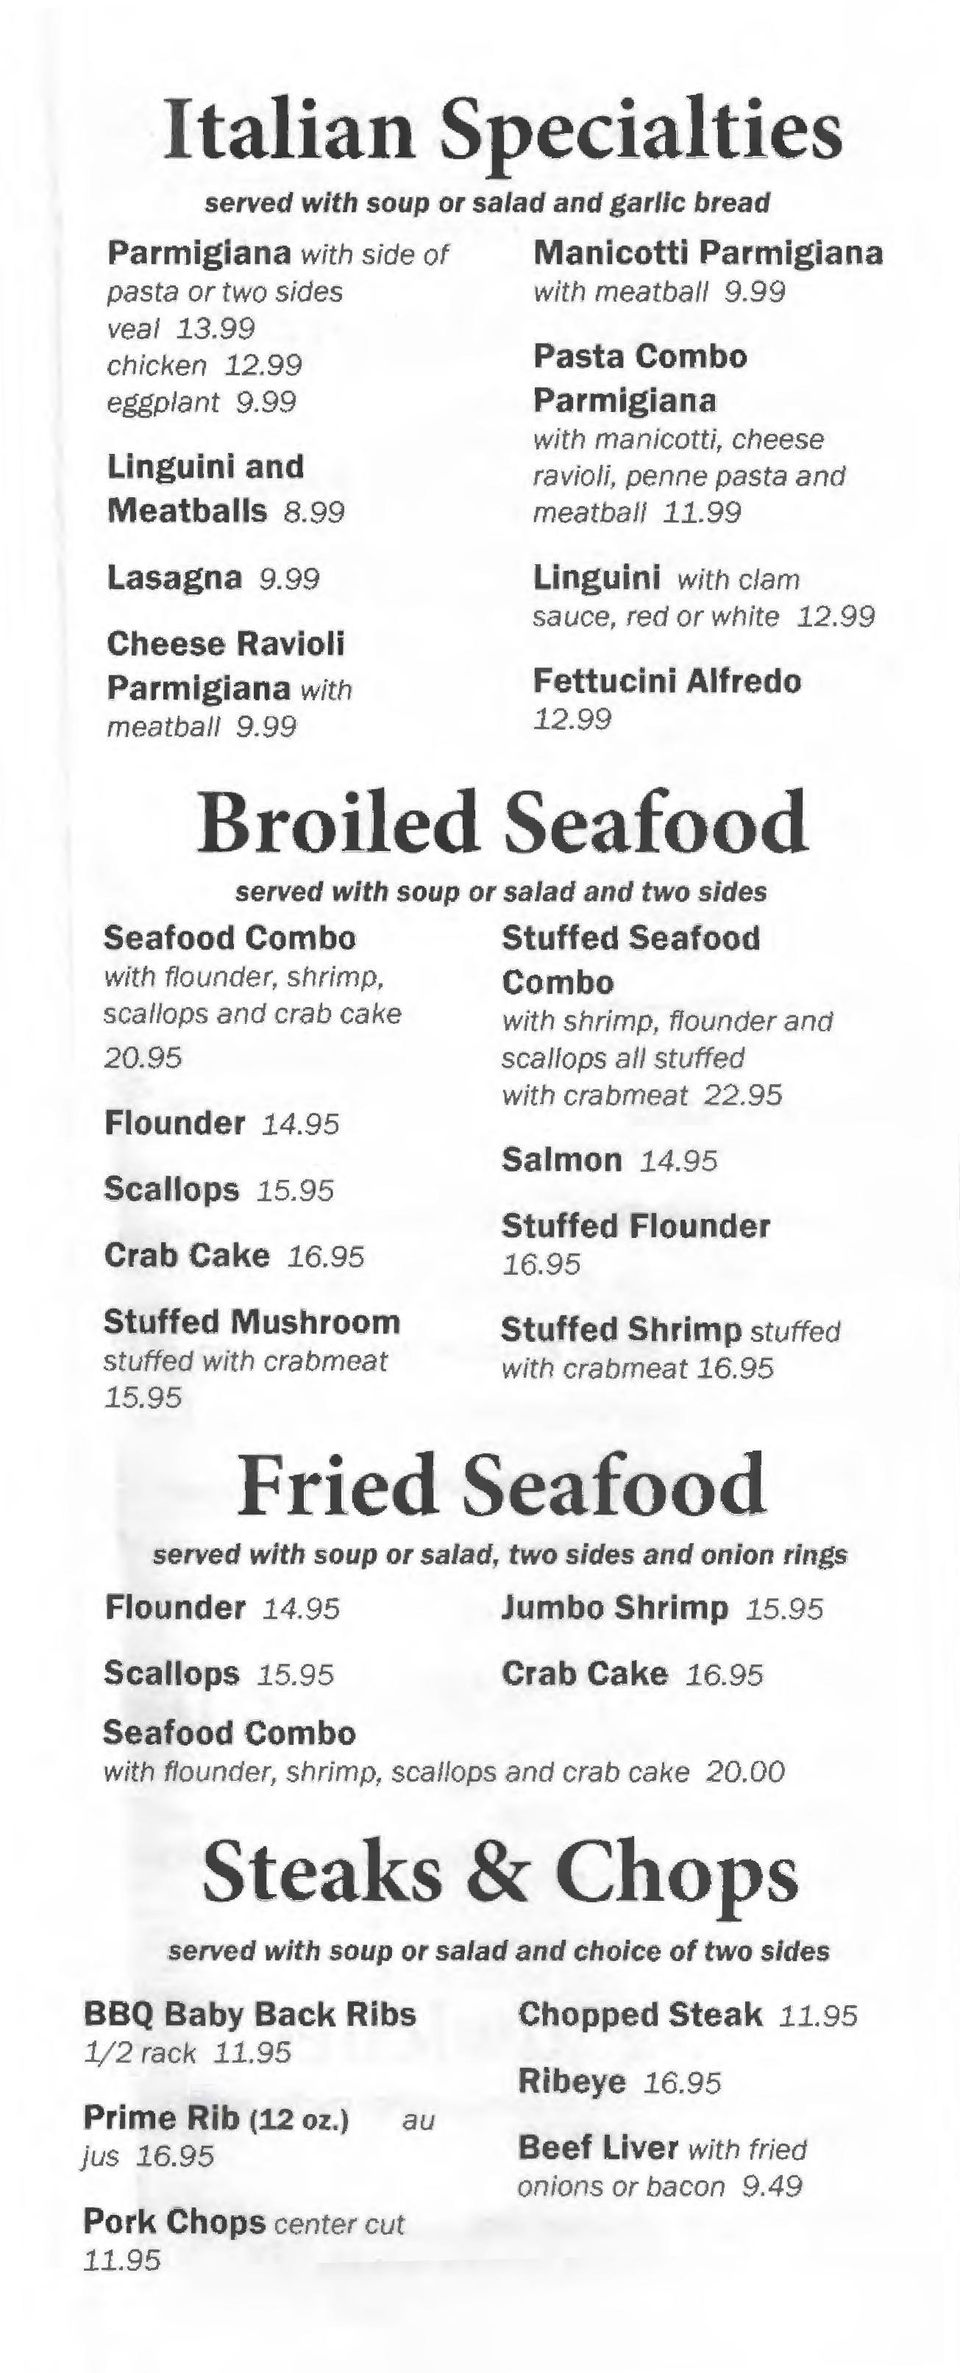 99 Llnguini with clam sauce, red or white 12.99 Fettuclnl Alfredo 12.99 Broiled Seafood served with soup or salad and two sides Seafood Combo with flounder, shrimp, scallops and crab cake 20.